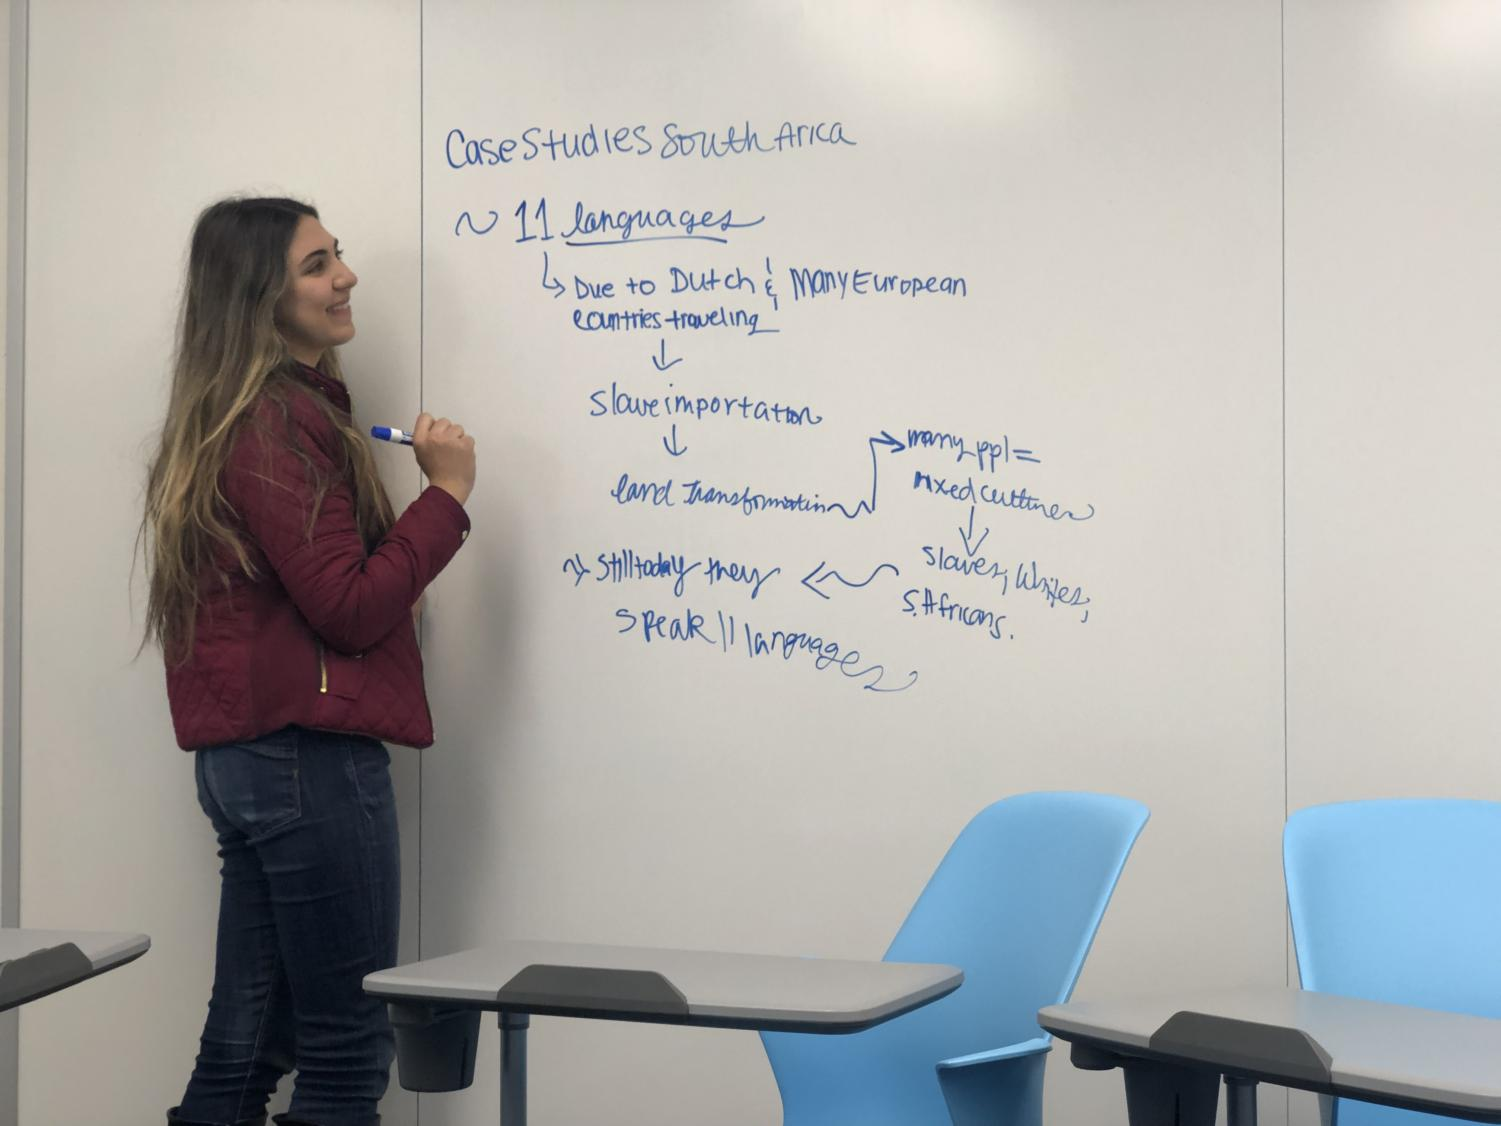 Isabelle Saad ('20) brainstorms ideas for her Advanced Studies Case Study of South Africa project